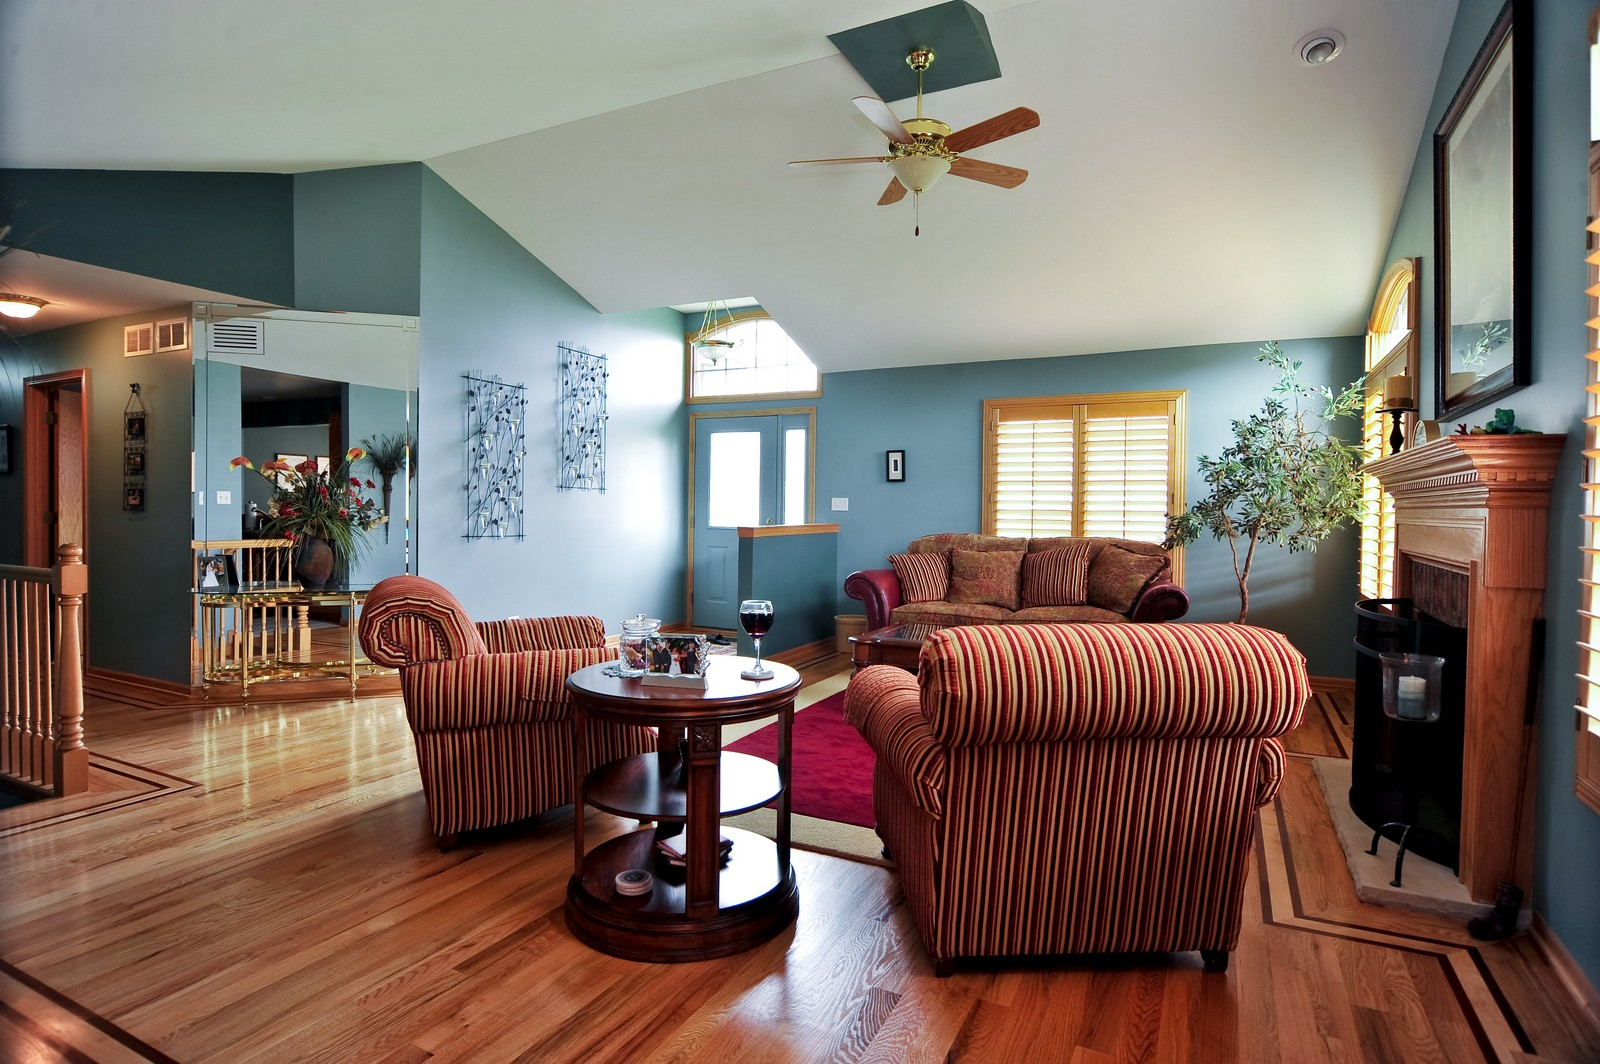 Real Estate Photography - 1153 Linden Circle, Beecher, IL, 60401 - Living Rm/Family Rm